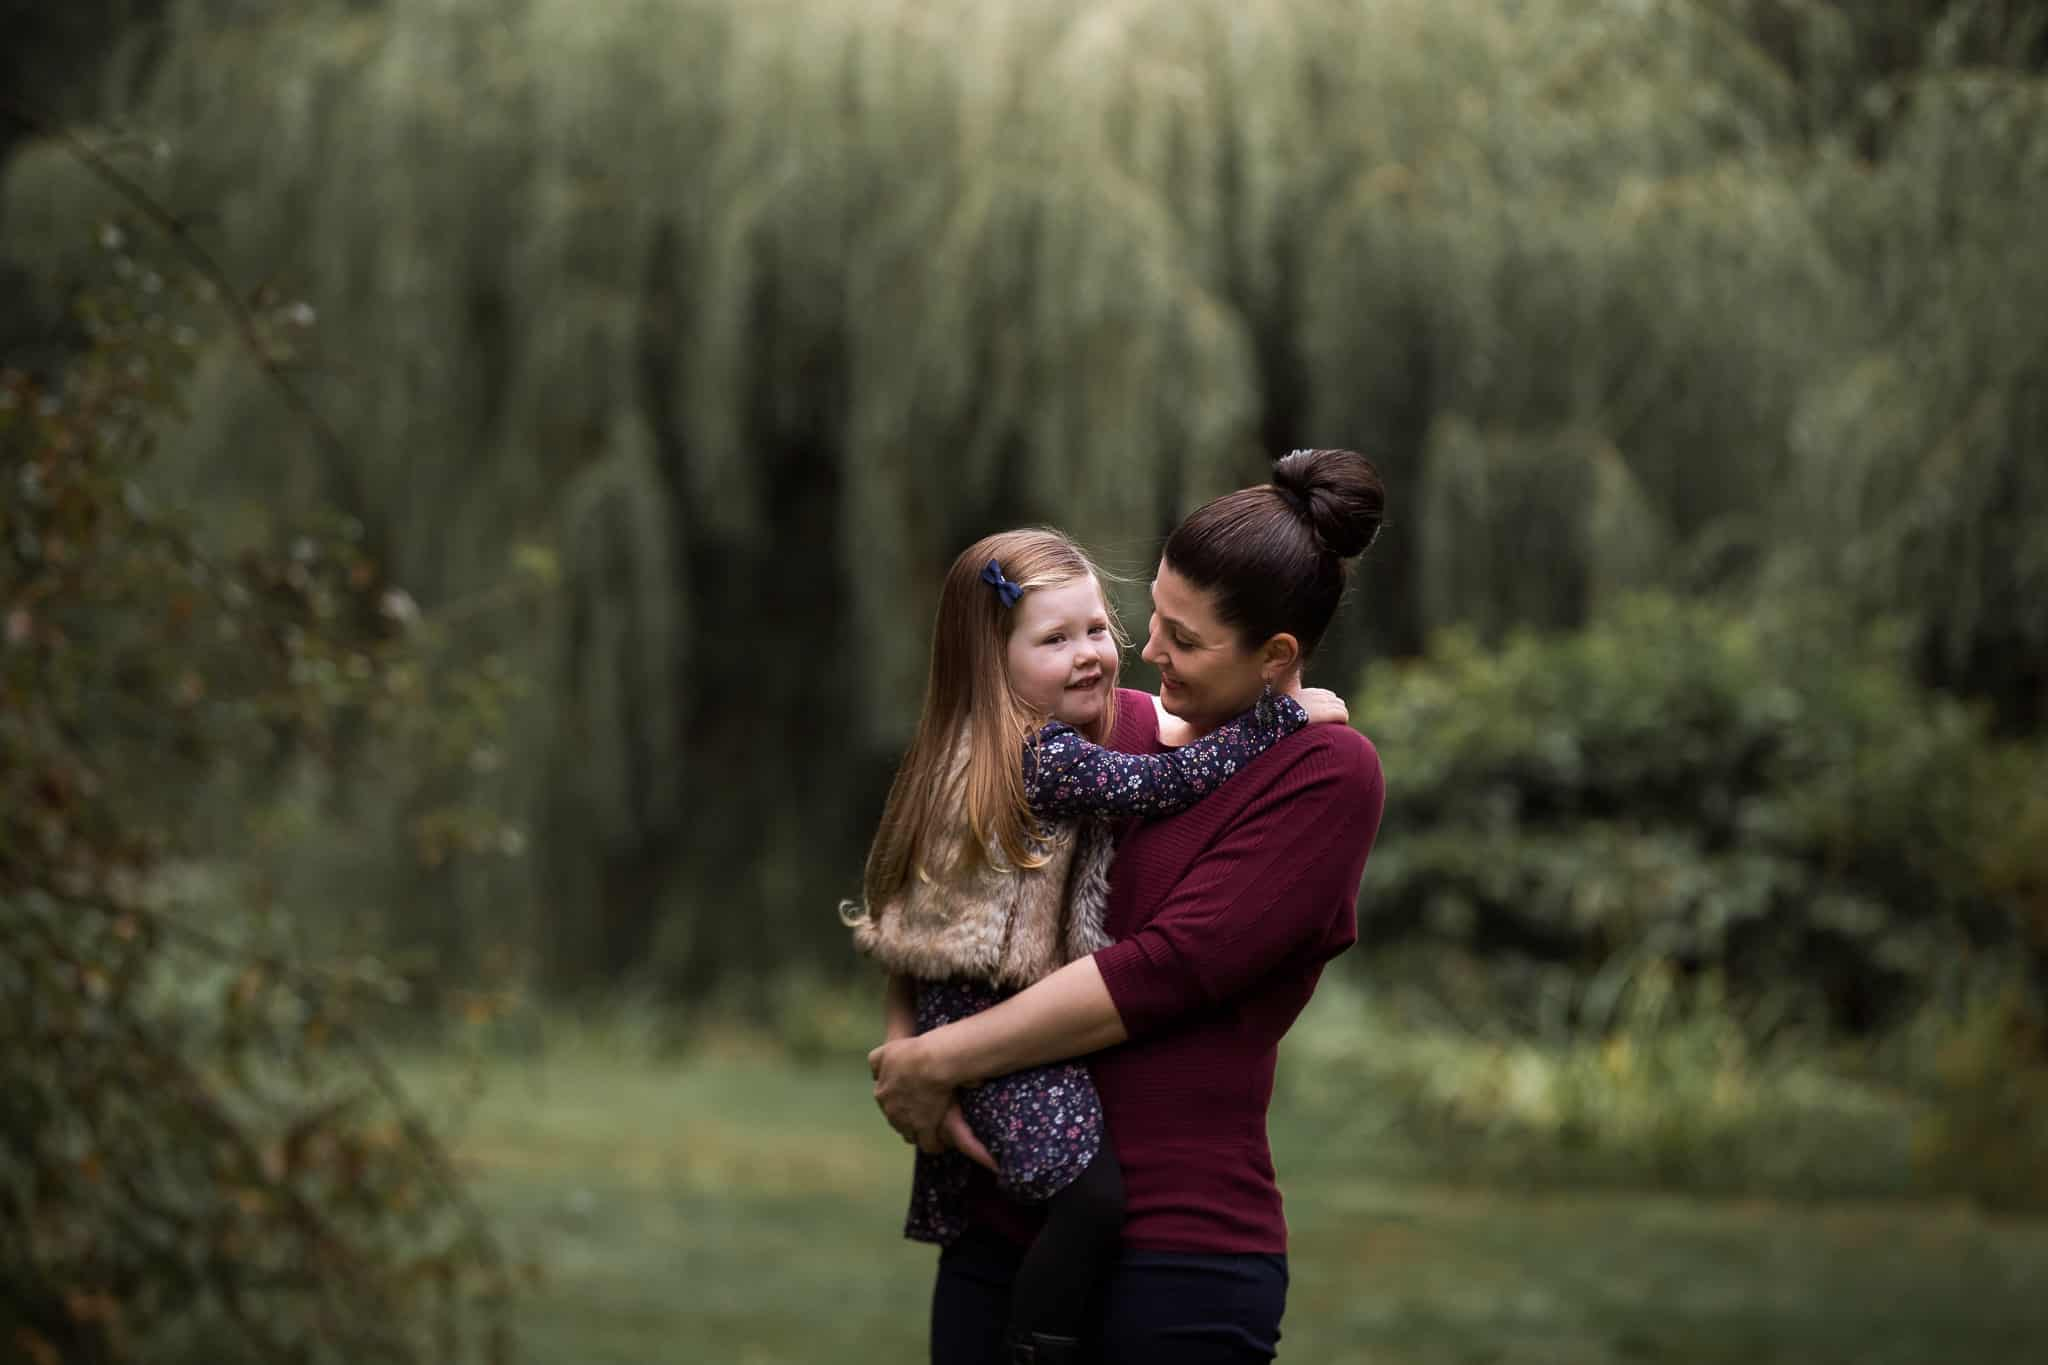 mom holding daughter and smiling